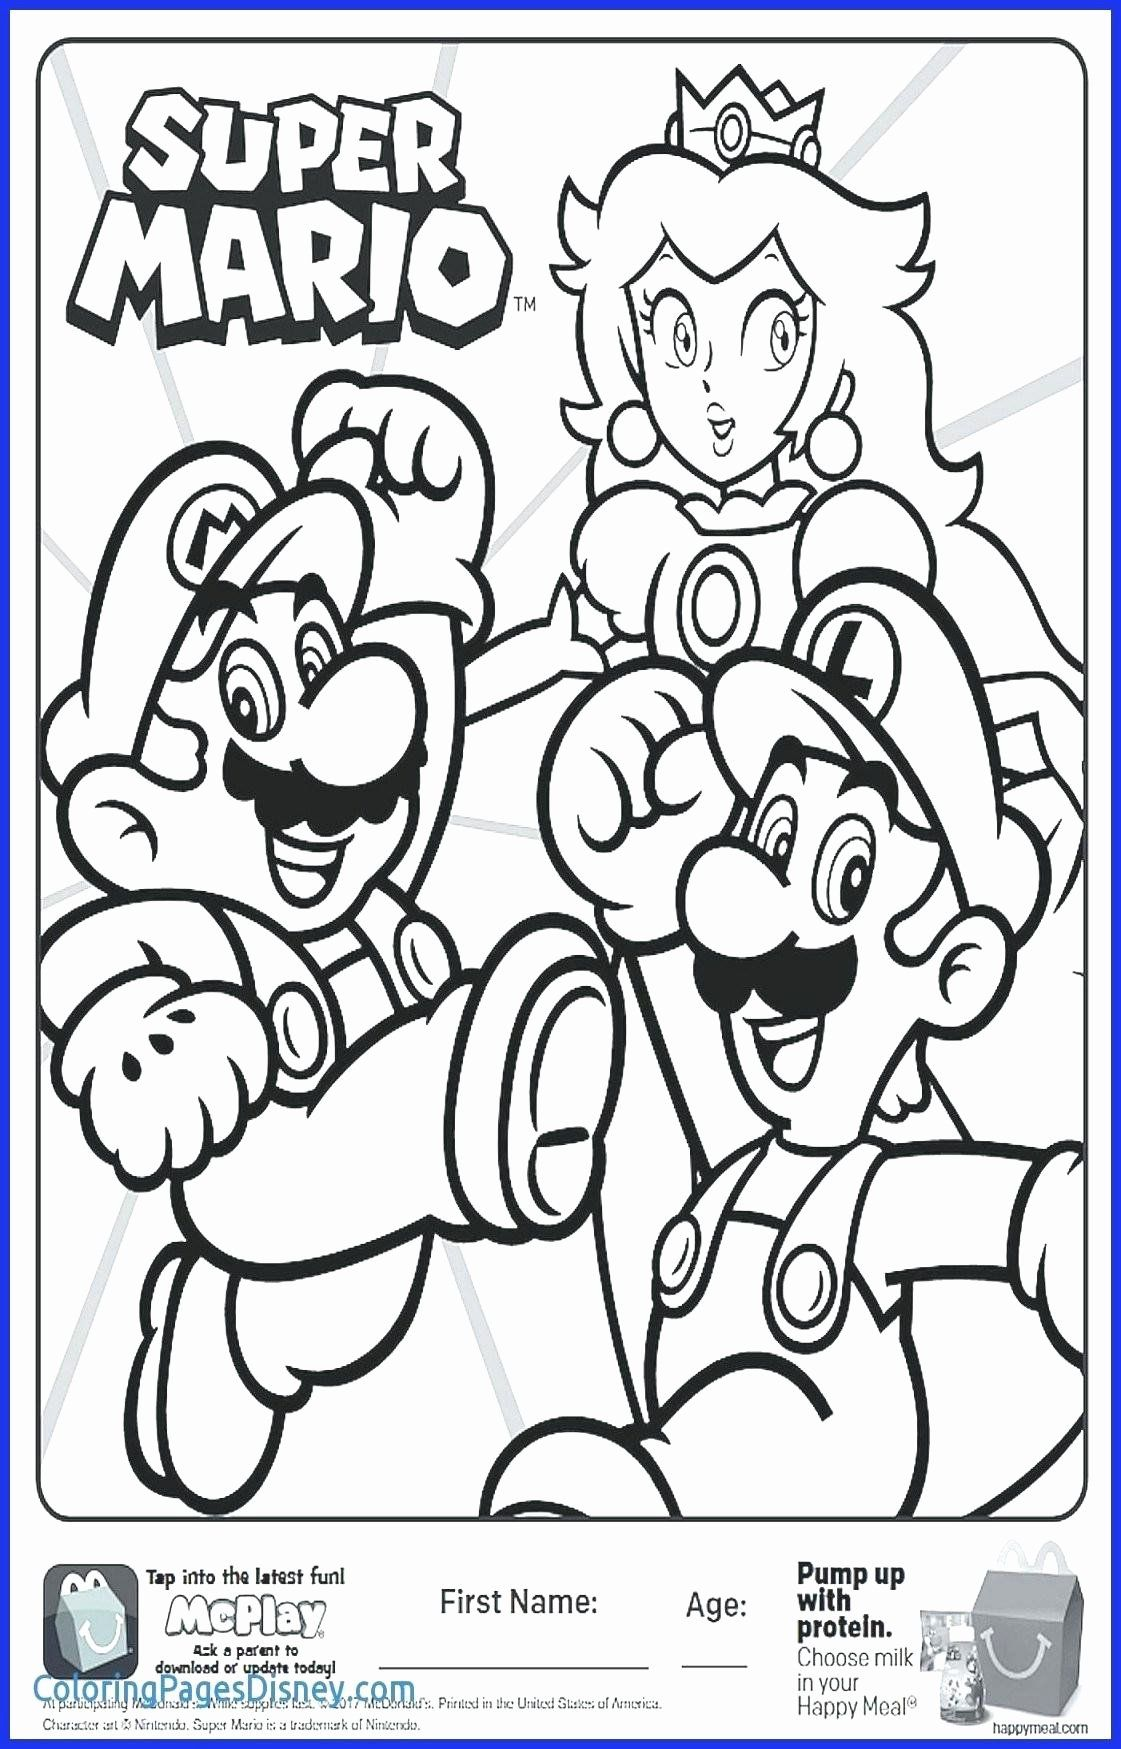 Dry Bones Coloring Pages Best Of Mario Bowser Coloring Pages Keynotesheet In 2020 Super Mario Coloring Pages Valentine Coloring Pages Mario Coloring Pages